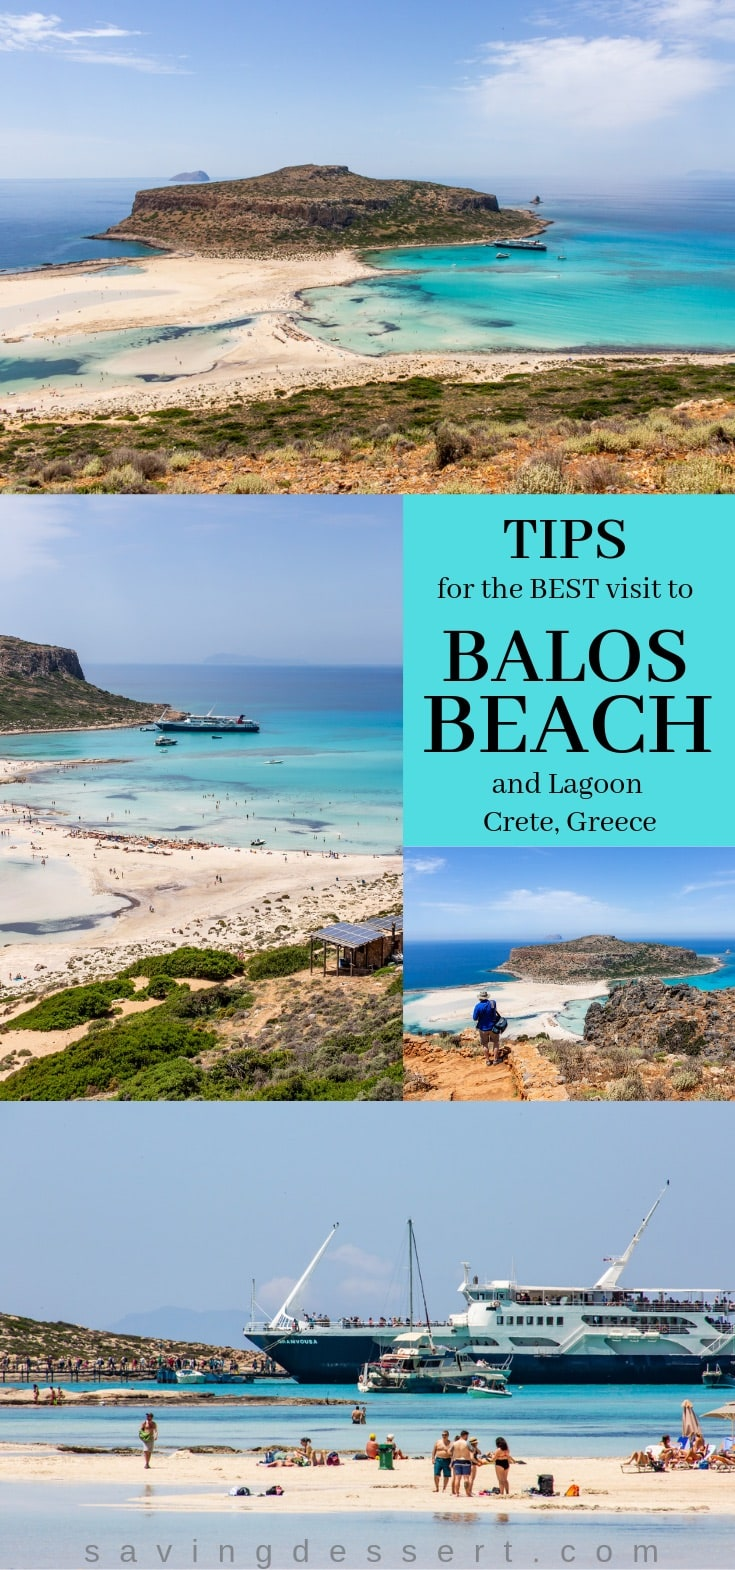 Photos from Balos Beach